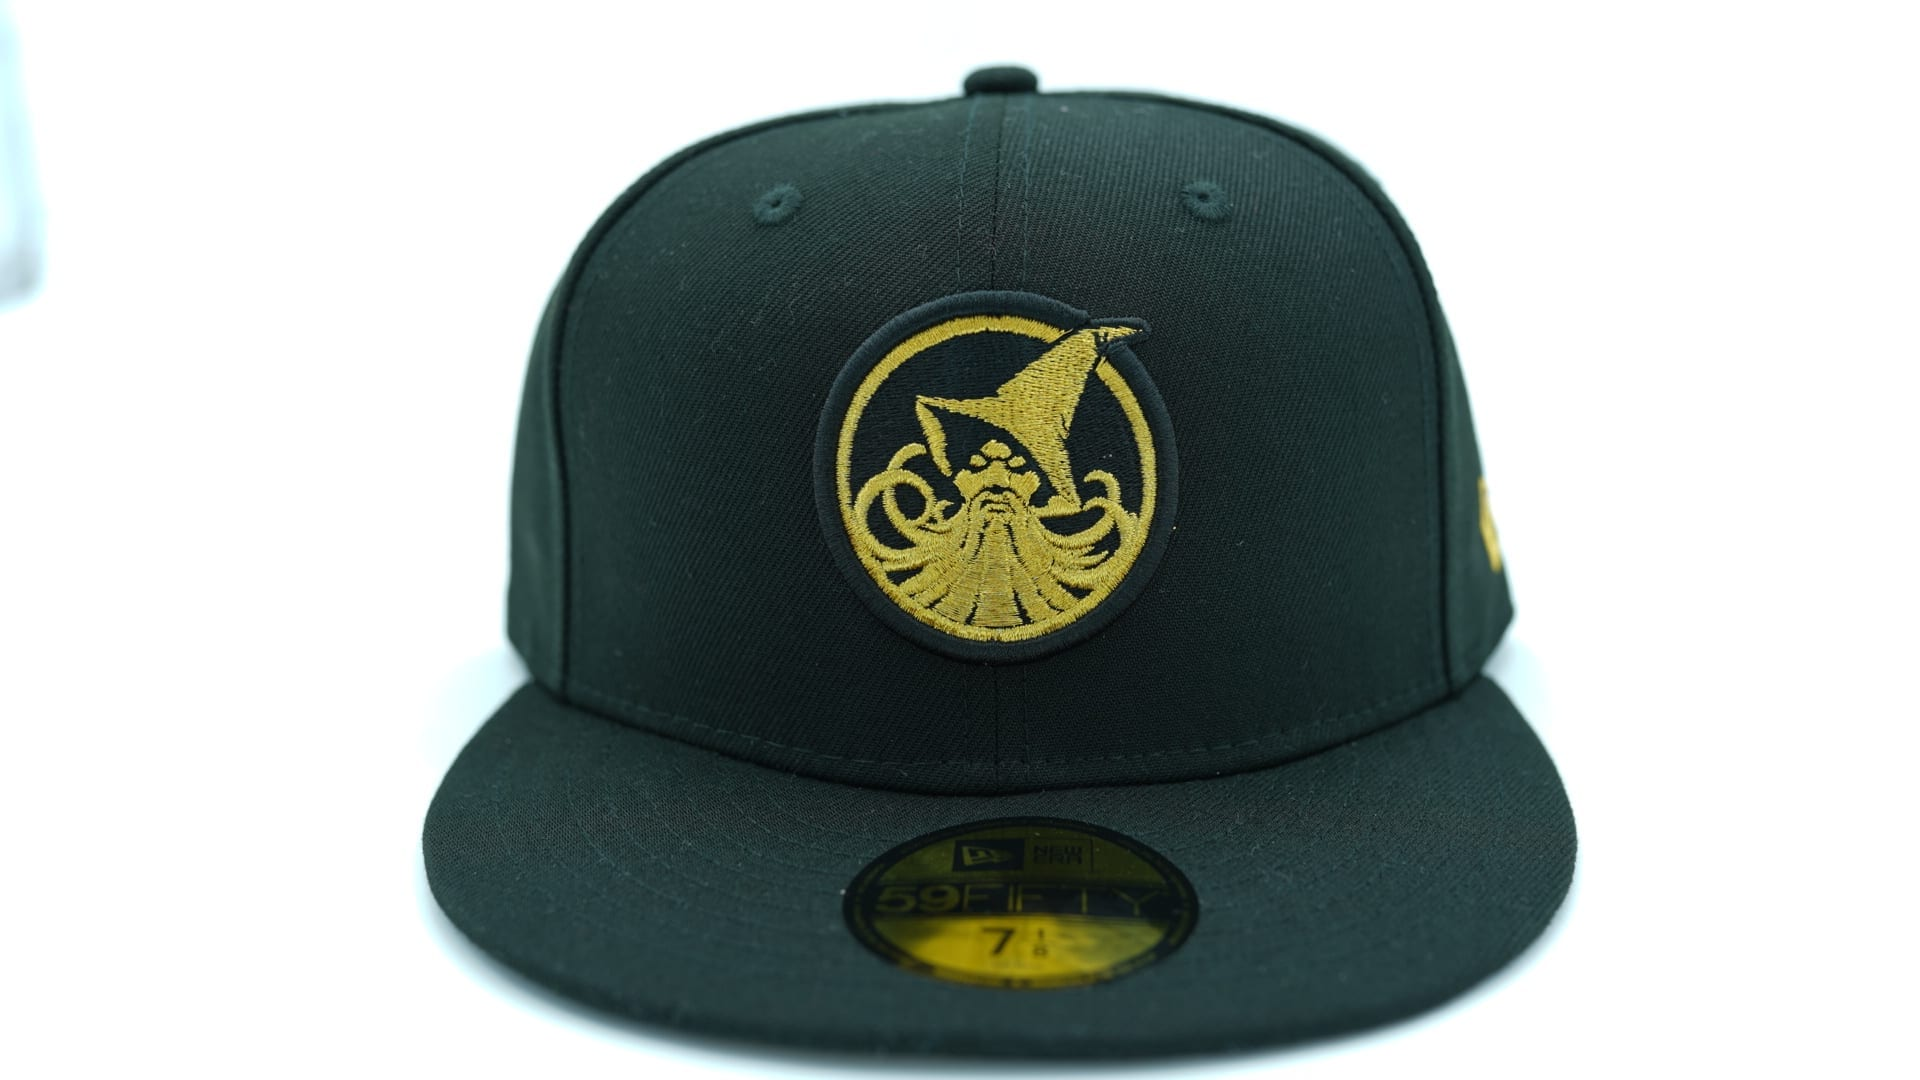 New York Yankees Sandlot 25th Anniversary 59Fifty Fitted Cap by NEW ERA x MLB